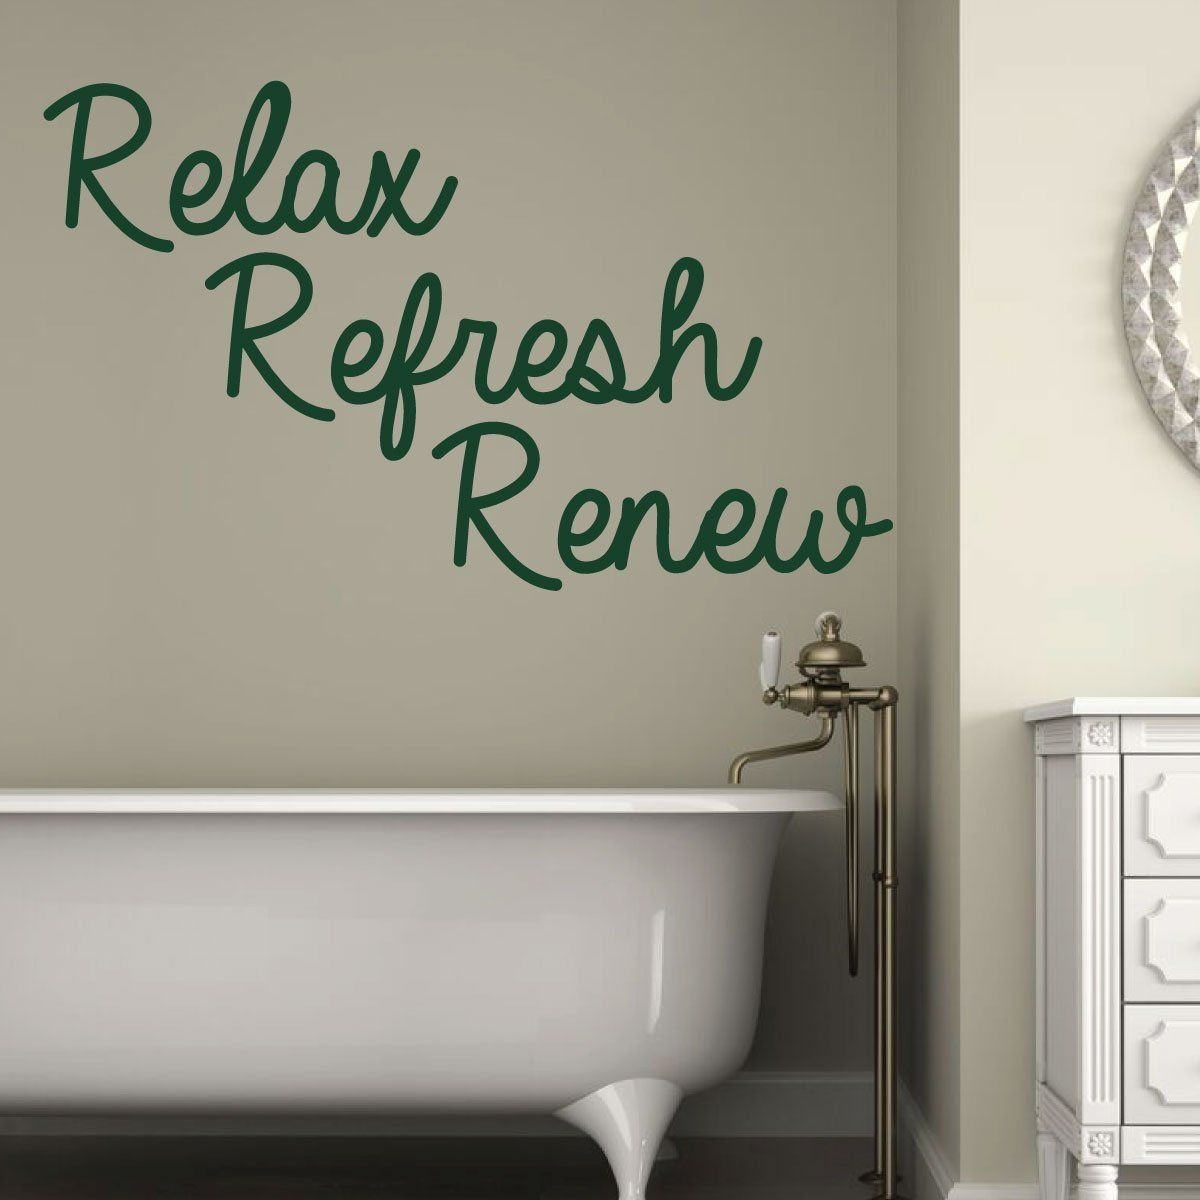 Bath Quote Relax Refresh Renew Removable Bathroom Vinyl Wall Decor Decal  Customvinyldecor